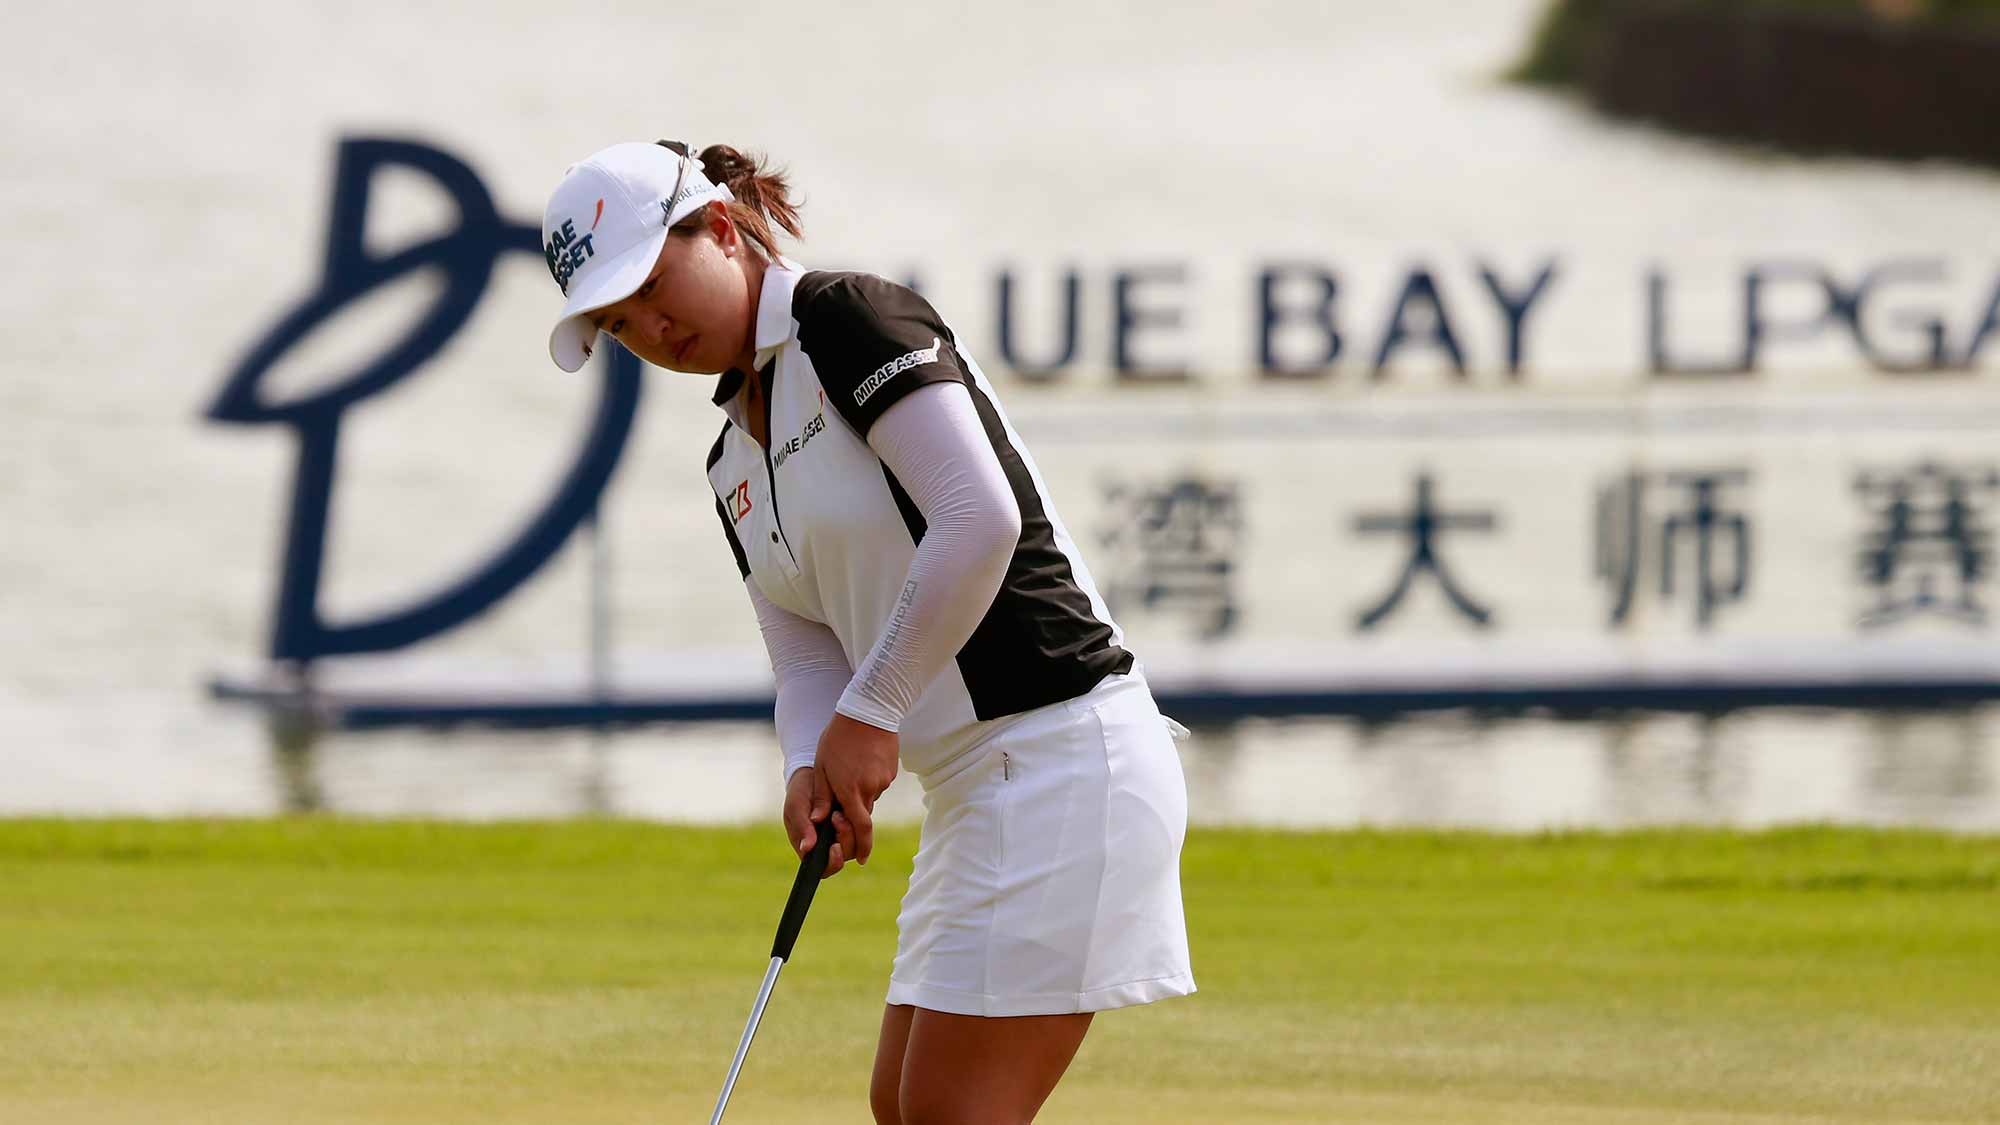 Sei Young Kim of Republic of Korea putts at the 18th green during Round 3 of Blue Bay LPGA of Day 3